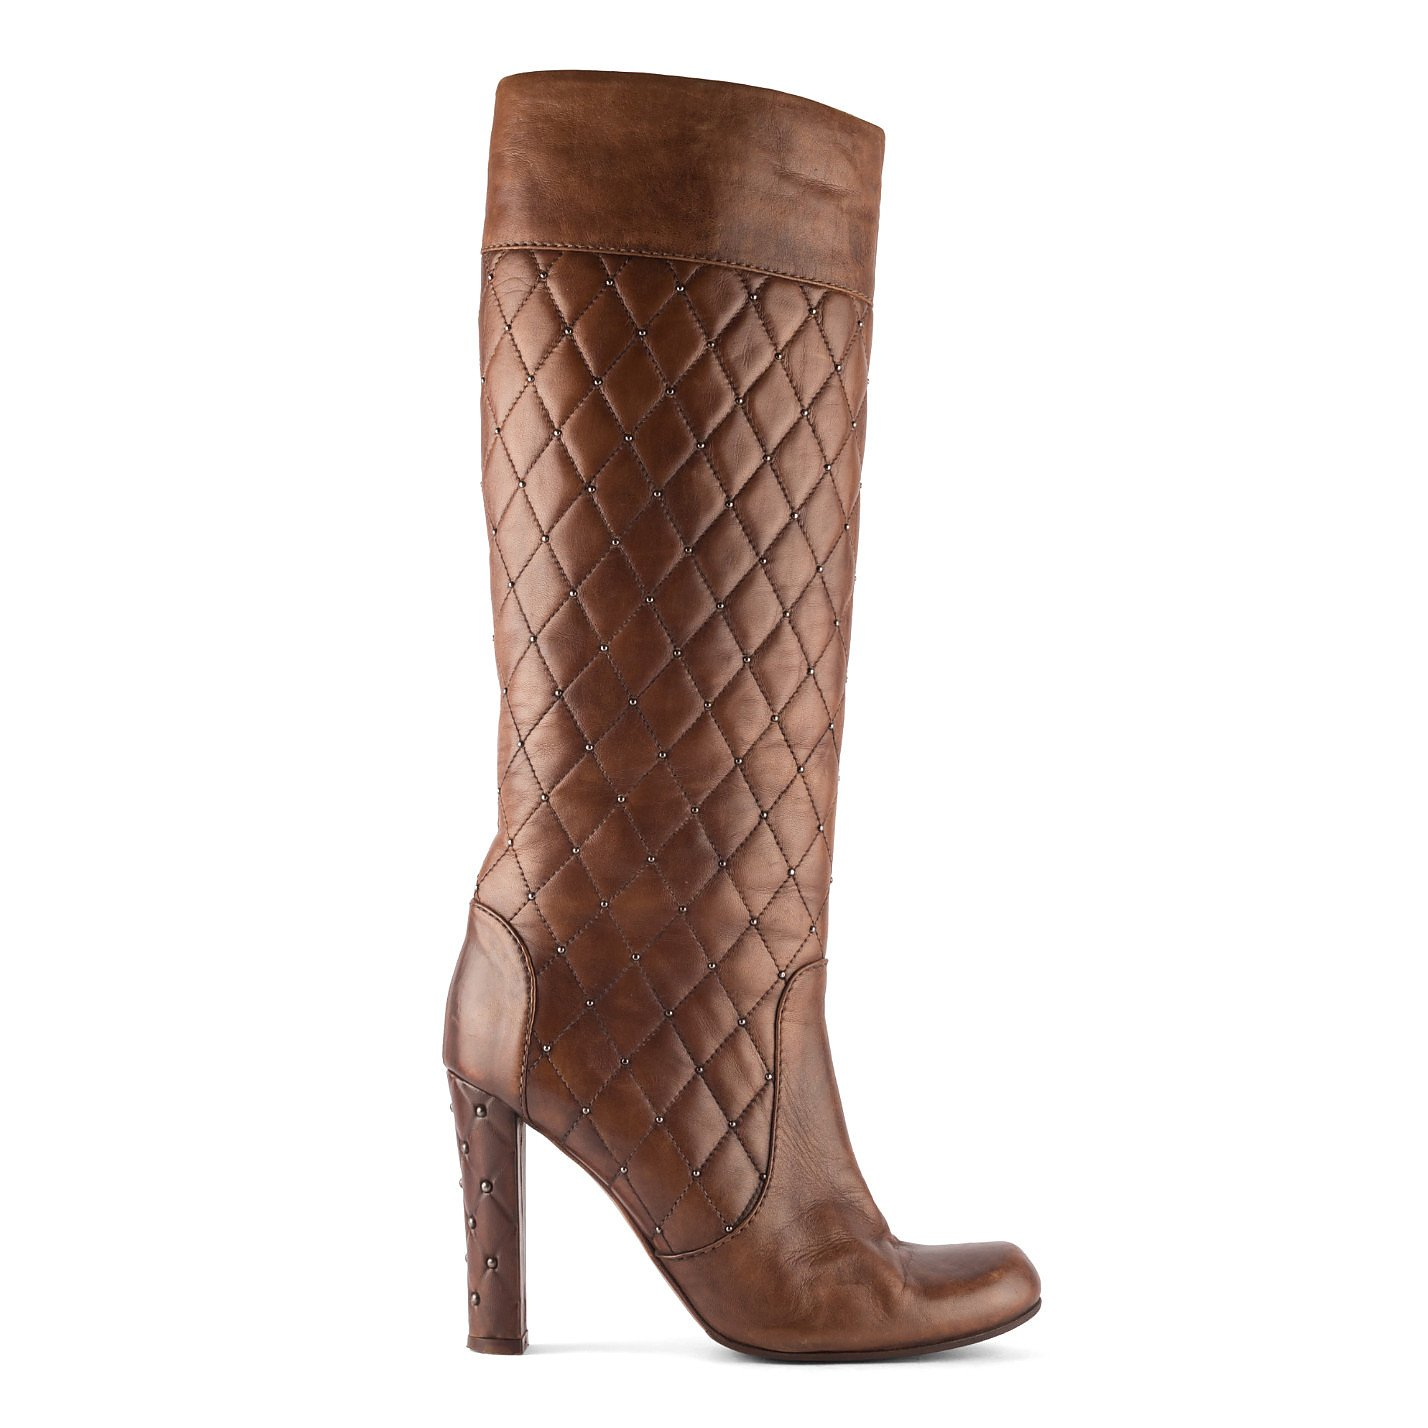 Viktor & Rolf Quilted Leather Knee High Boots